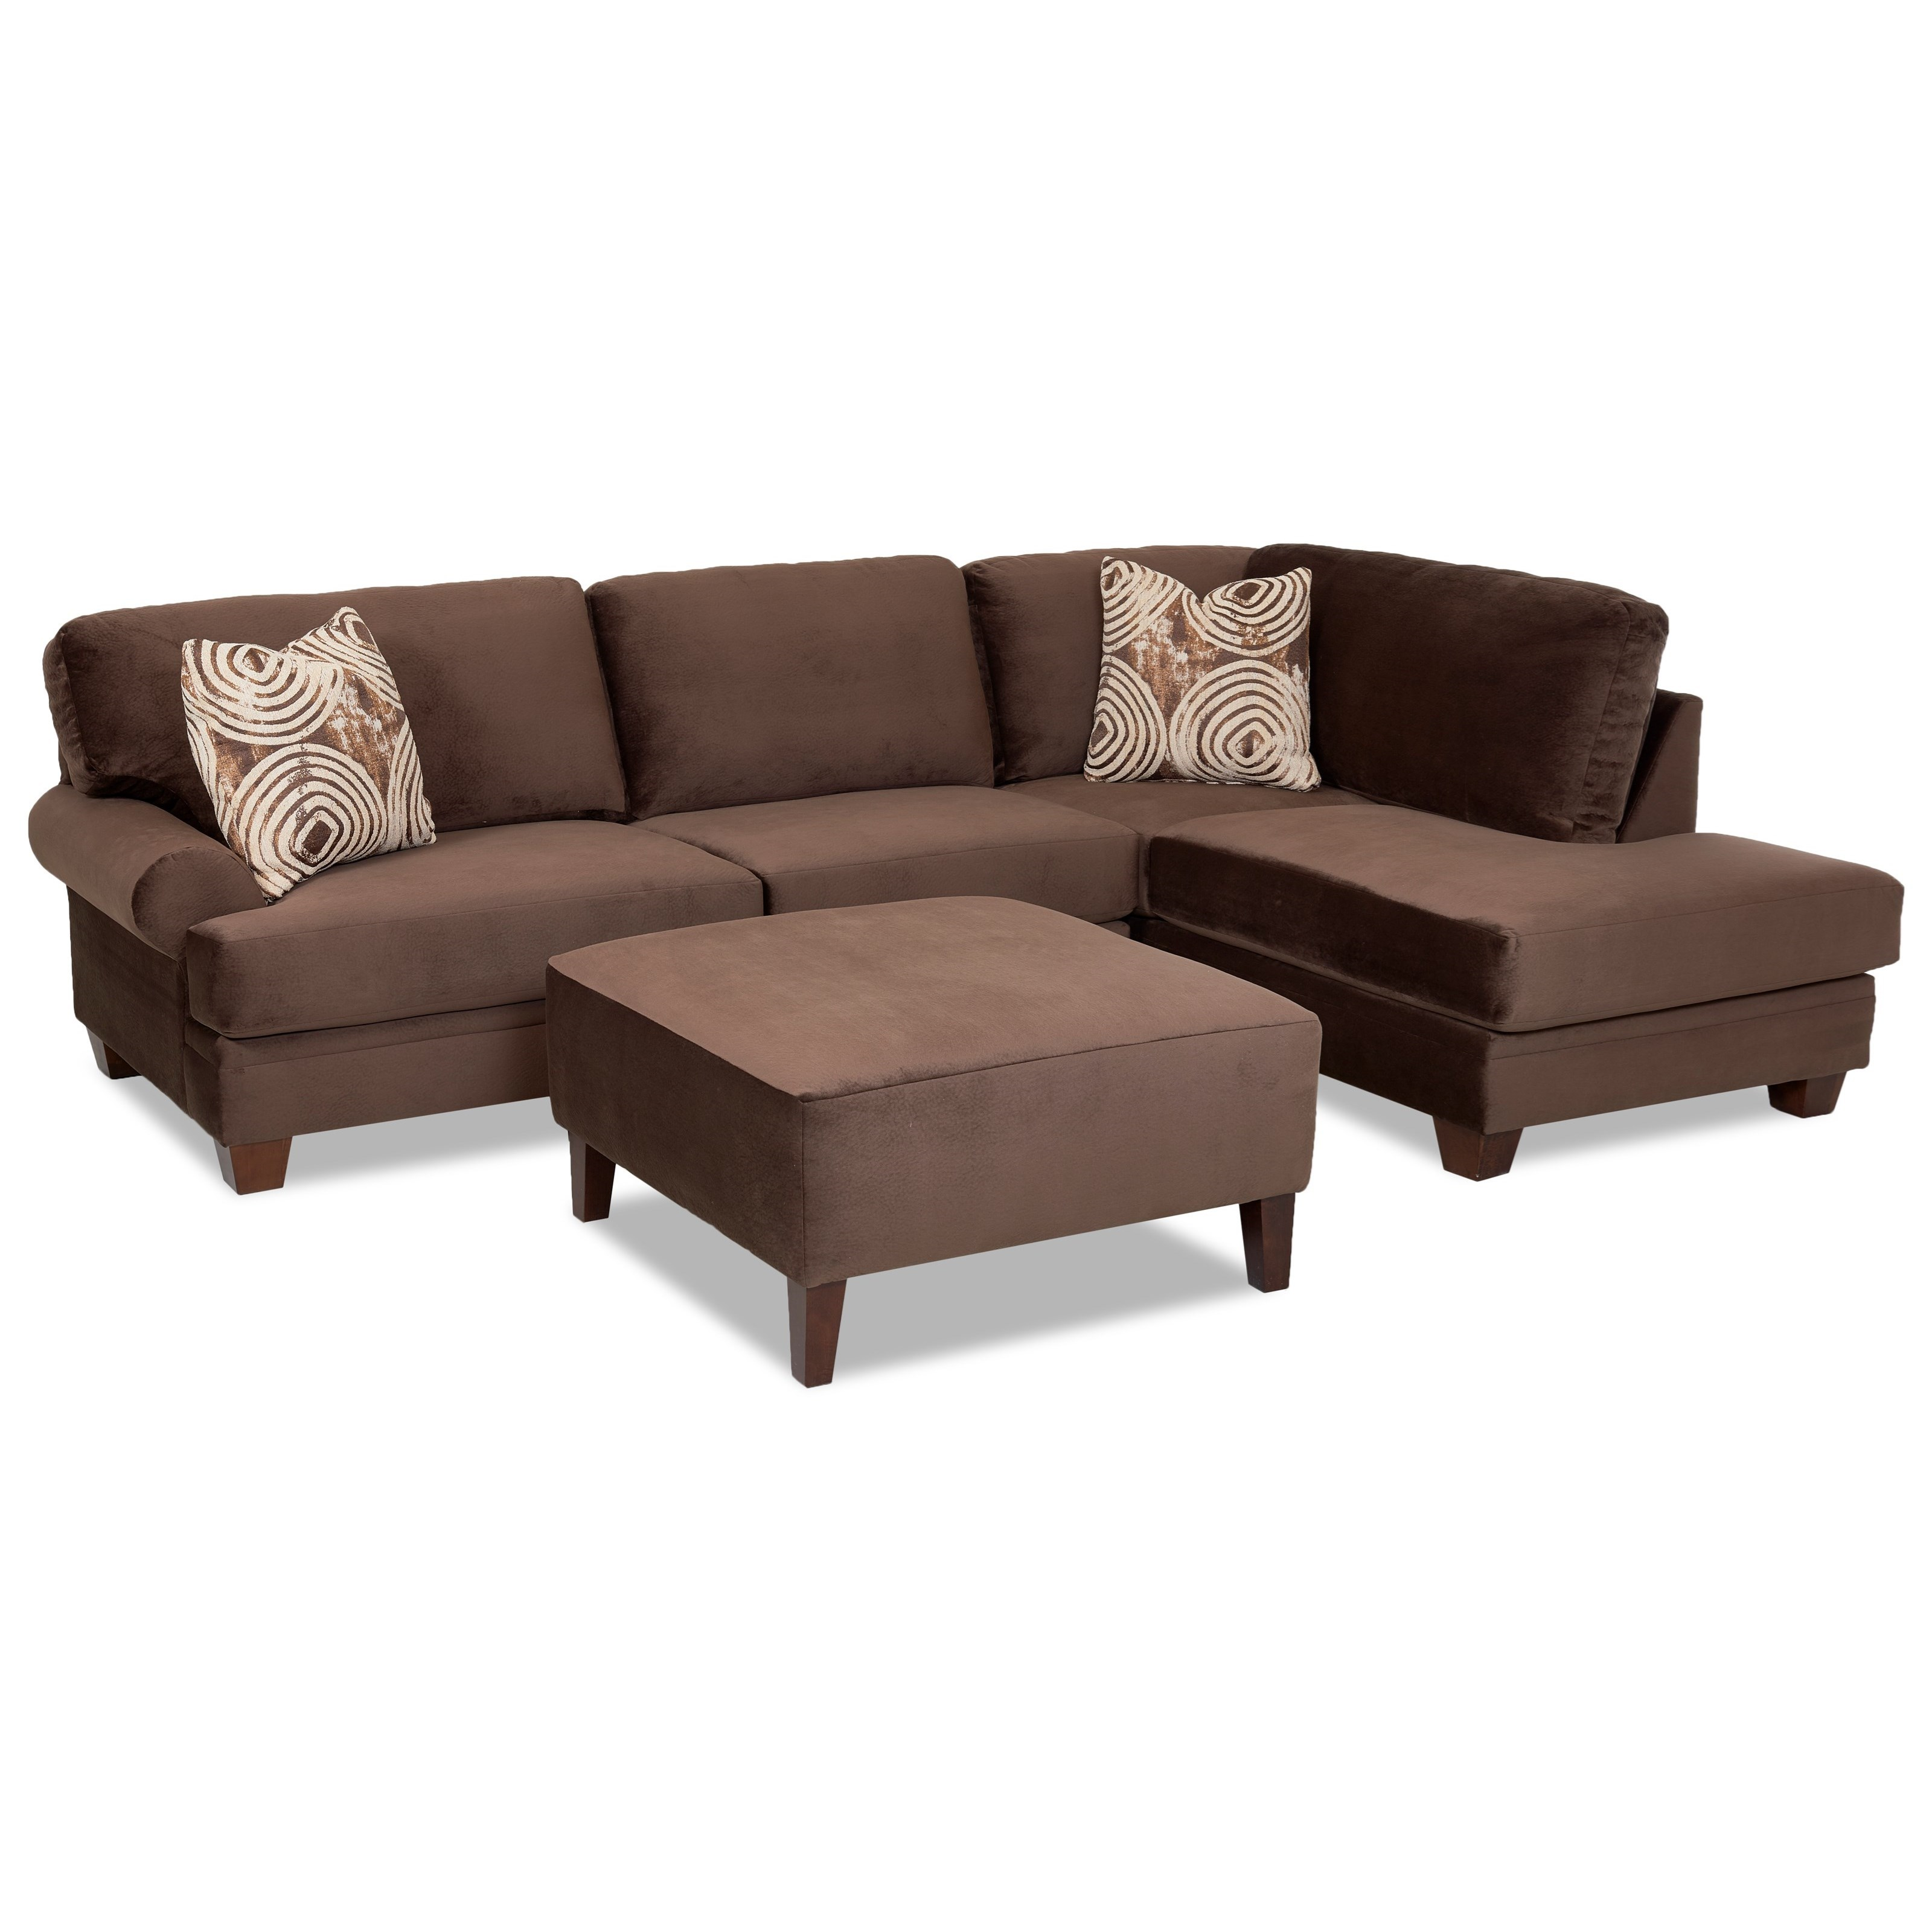 Klaussner Tinley Living Room Group Wayside Furniture Upholstery Group